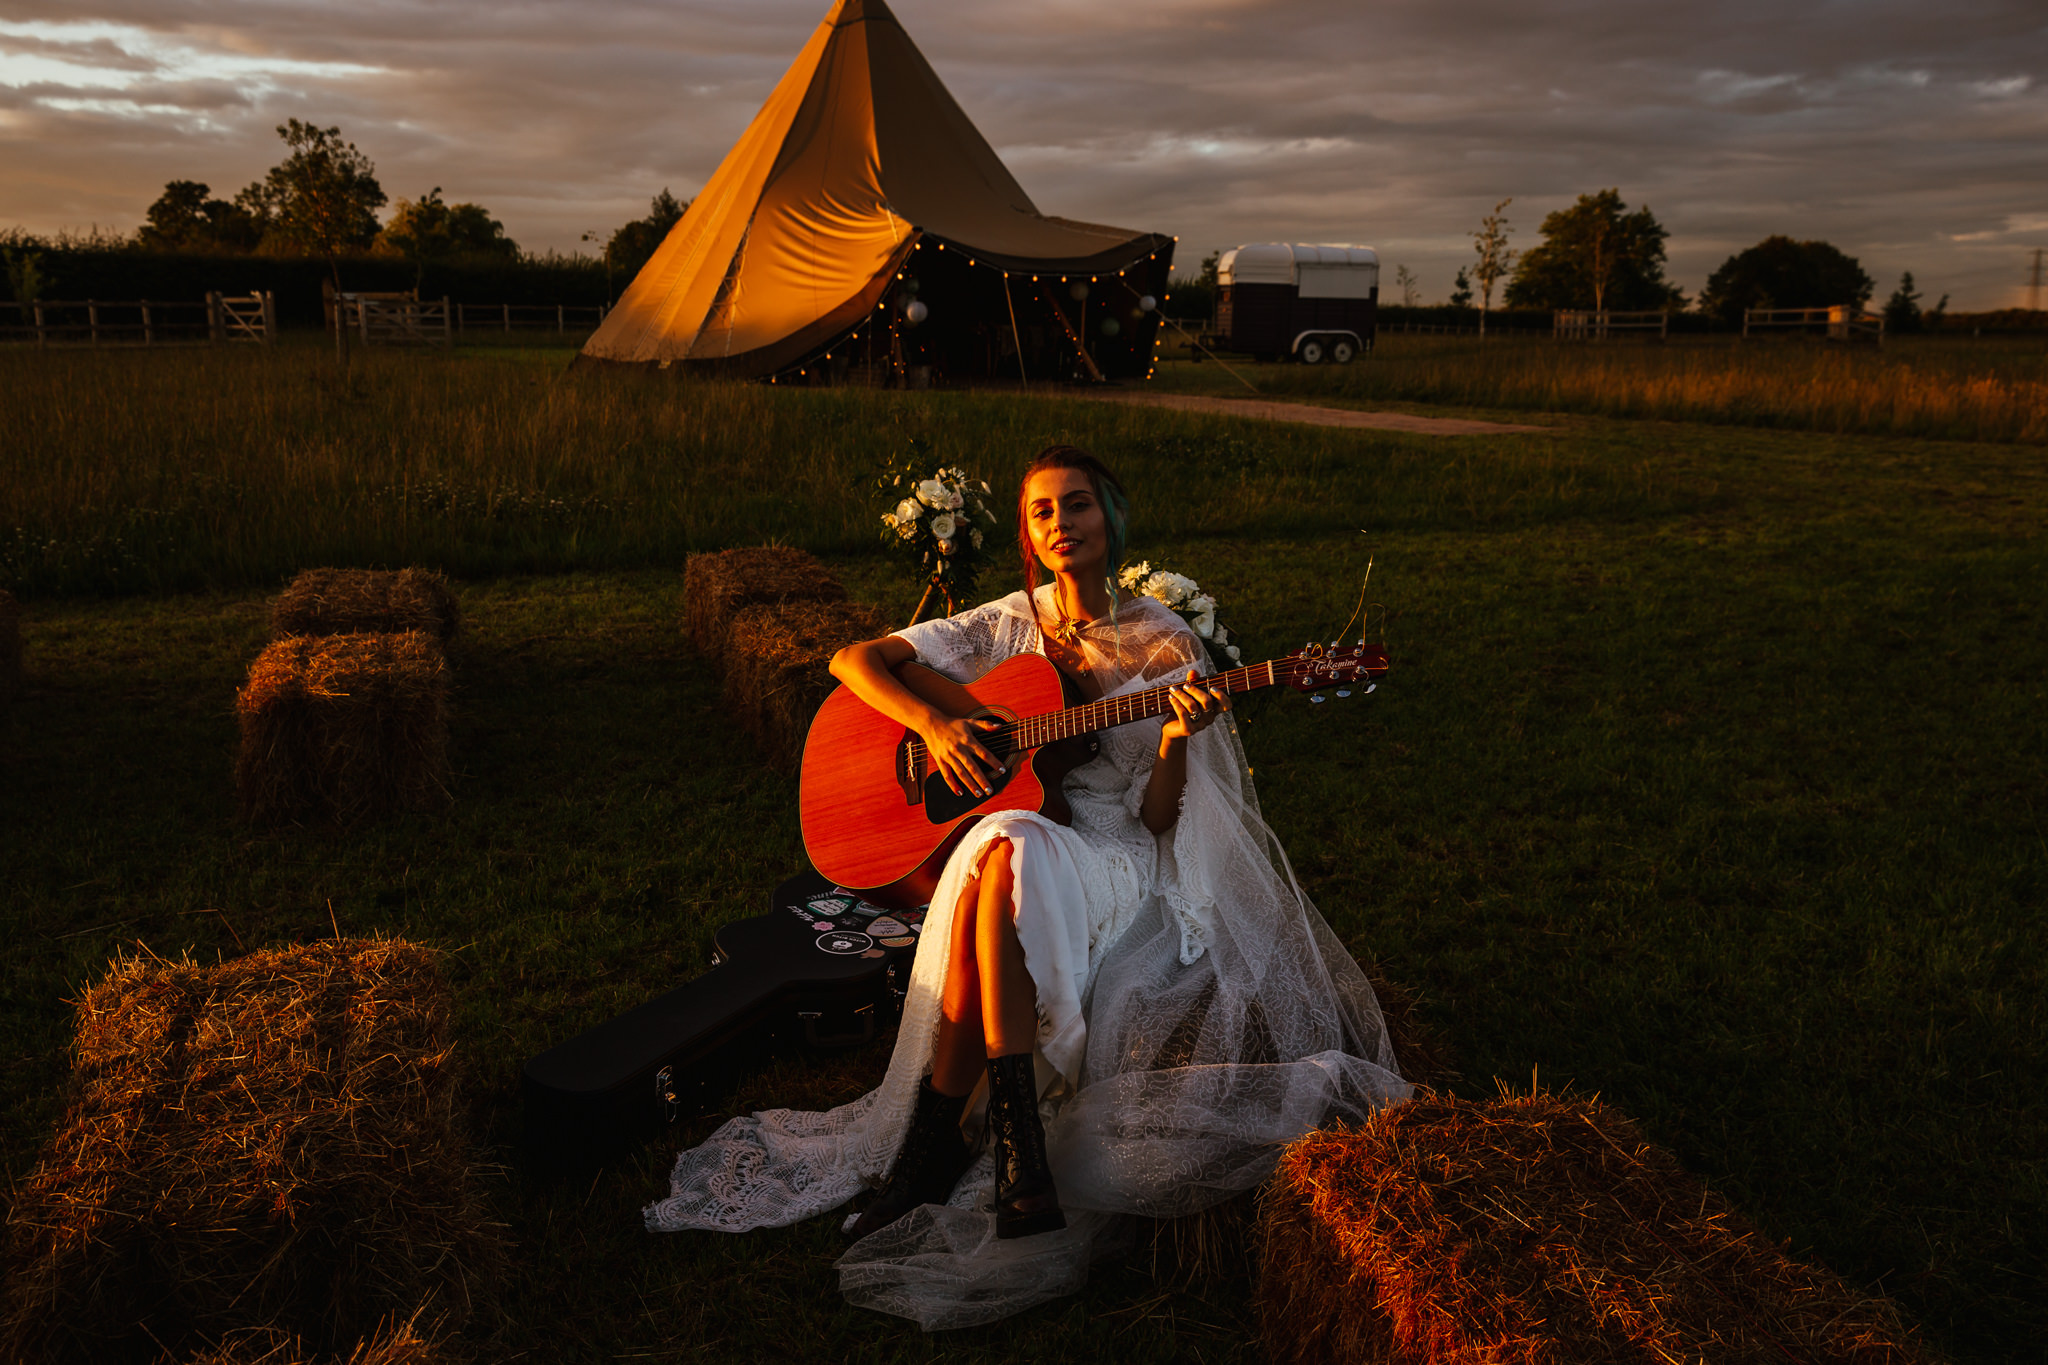 Outdoor Summer Wedding - Bride sat in front of Tipi playing guitar